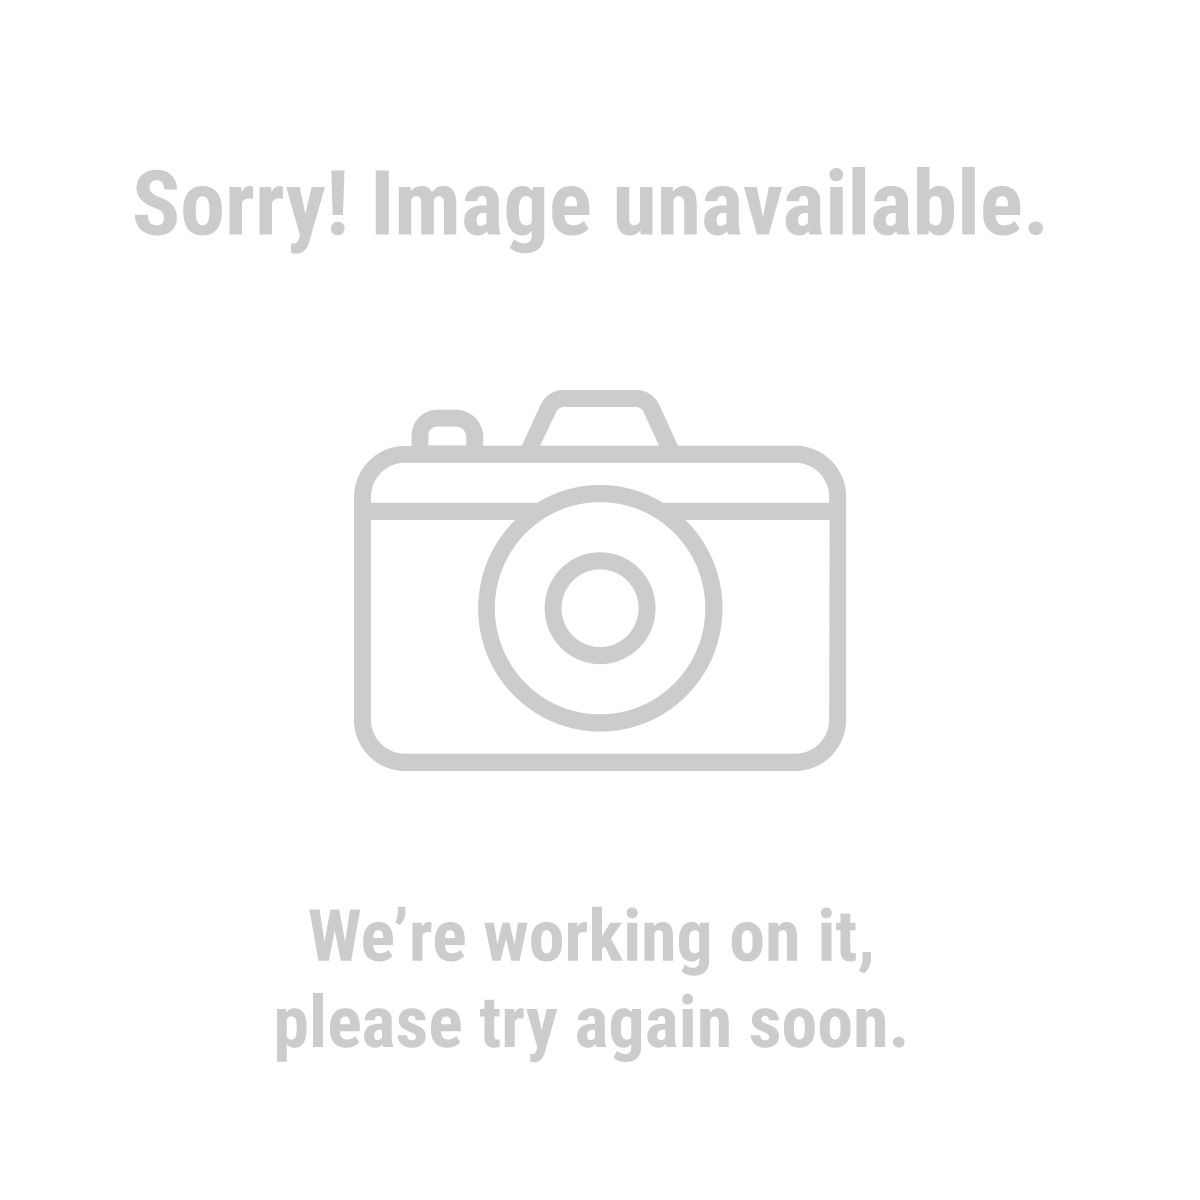 Western Safety 47643 Chemical Splash Safety Goggles